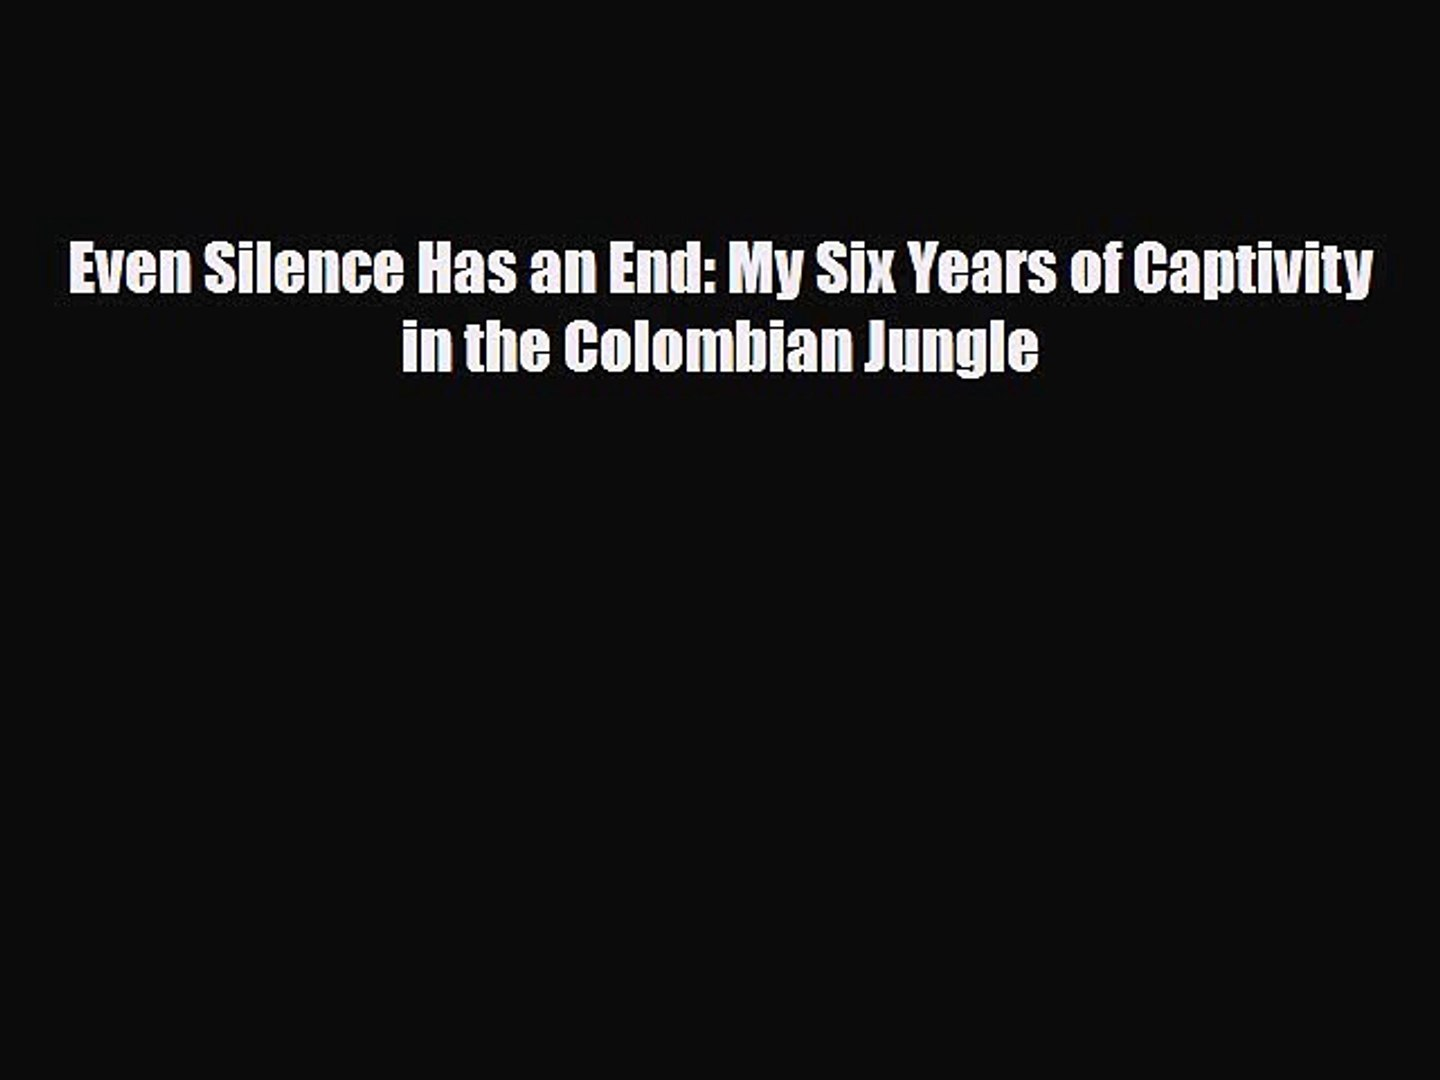 Even Silence Has an End My Six Years of Captivity in the Colombian Jungle